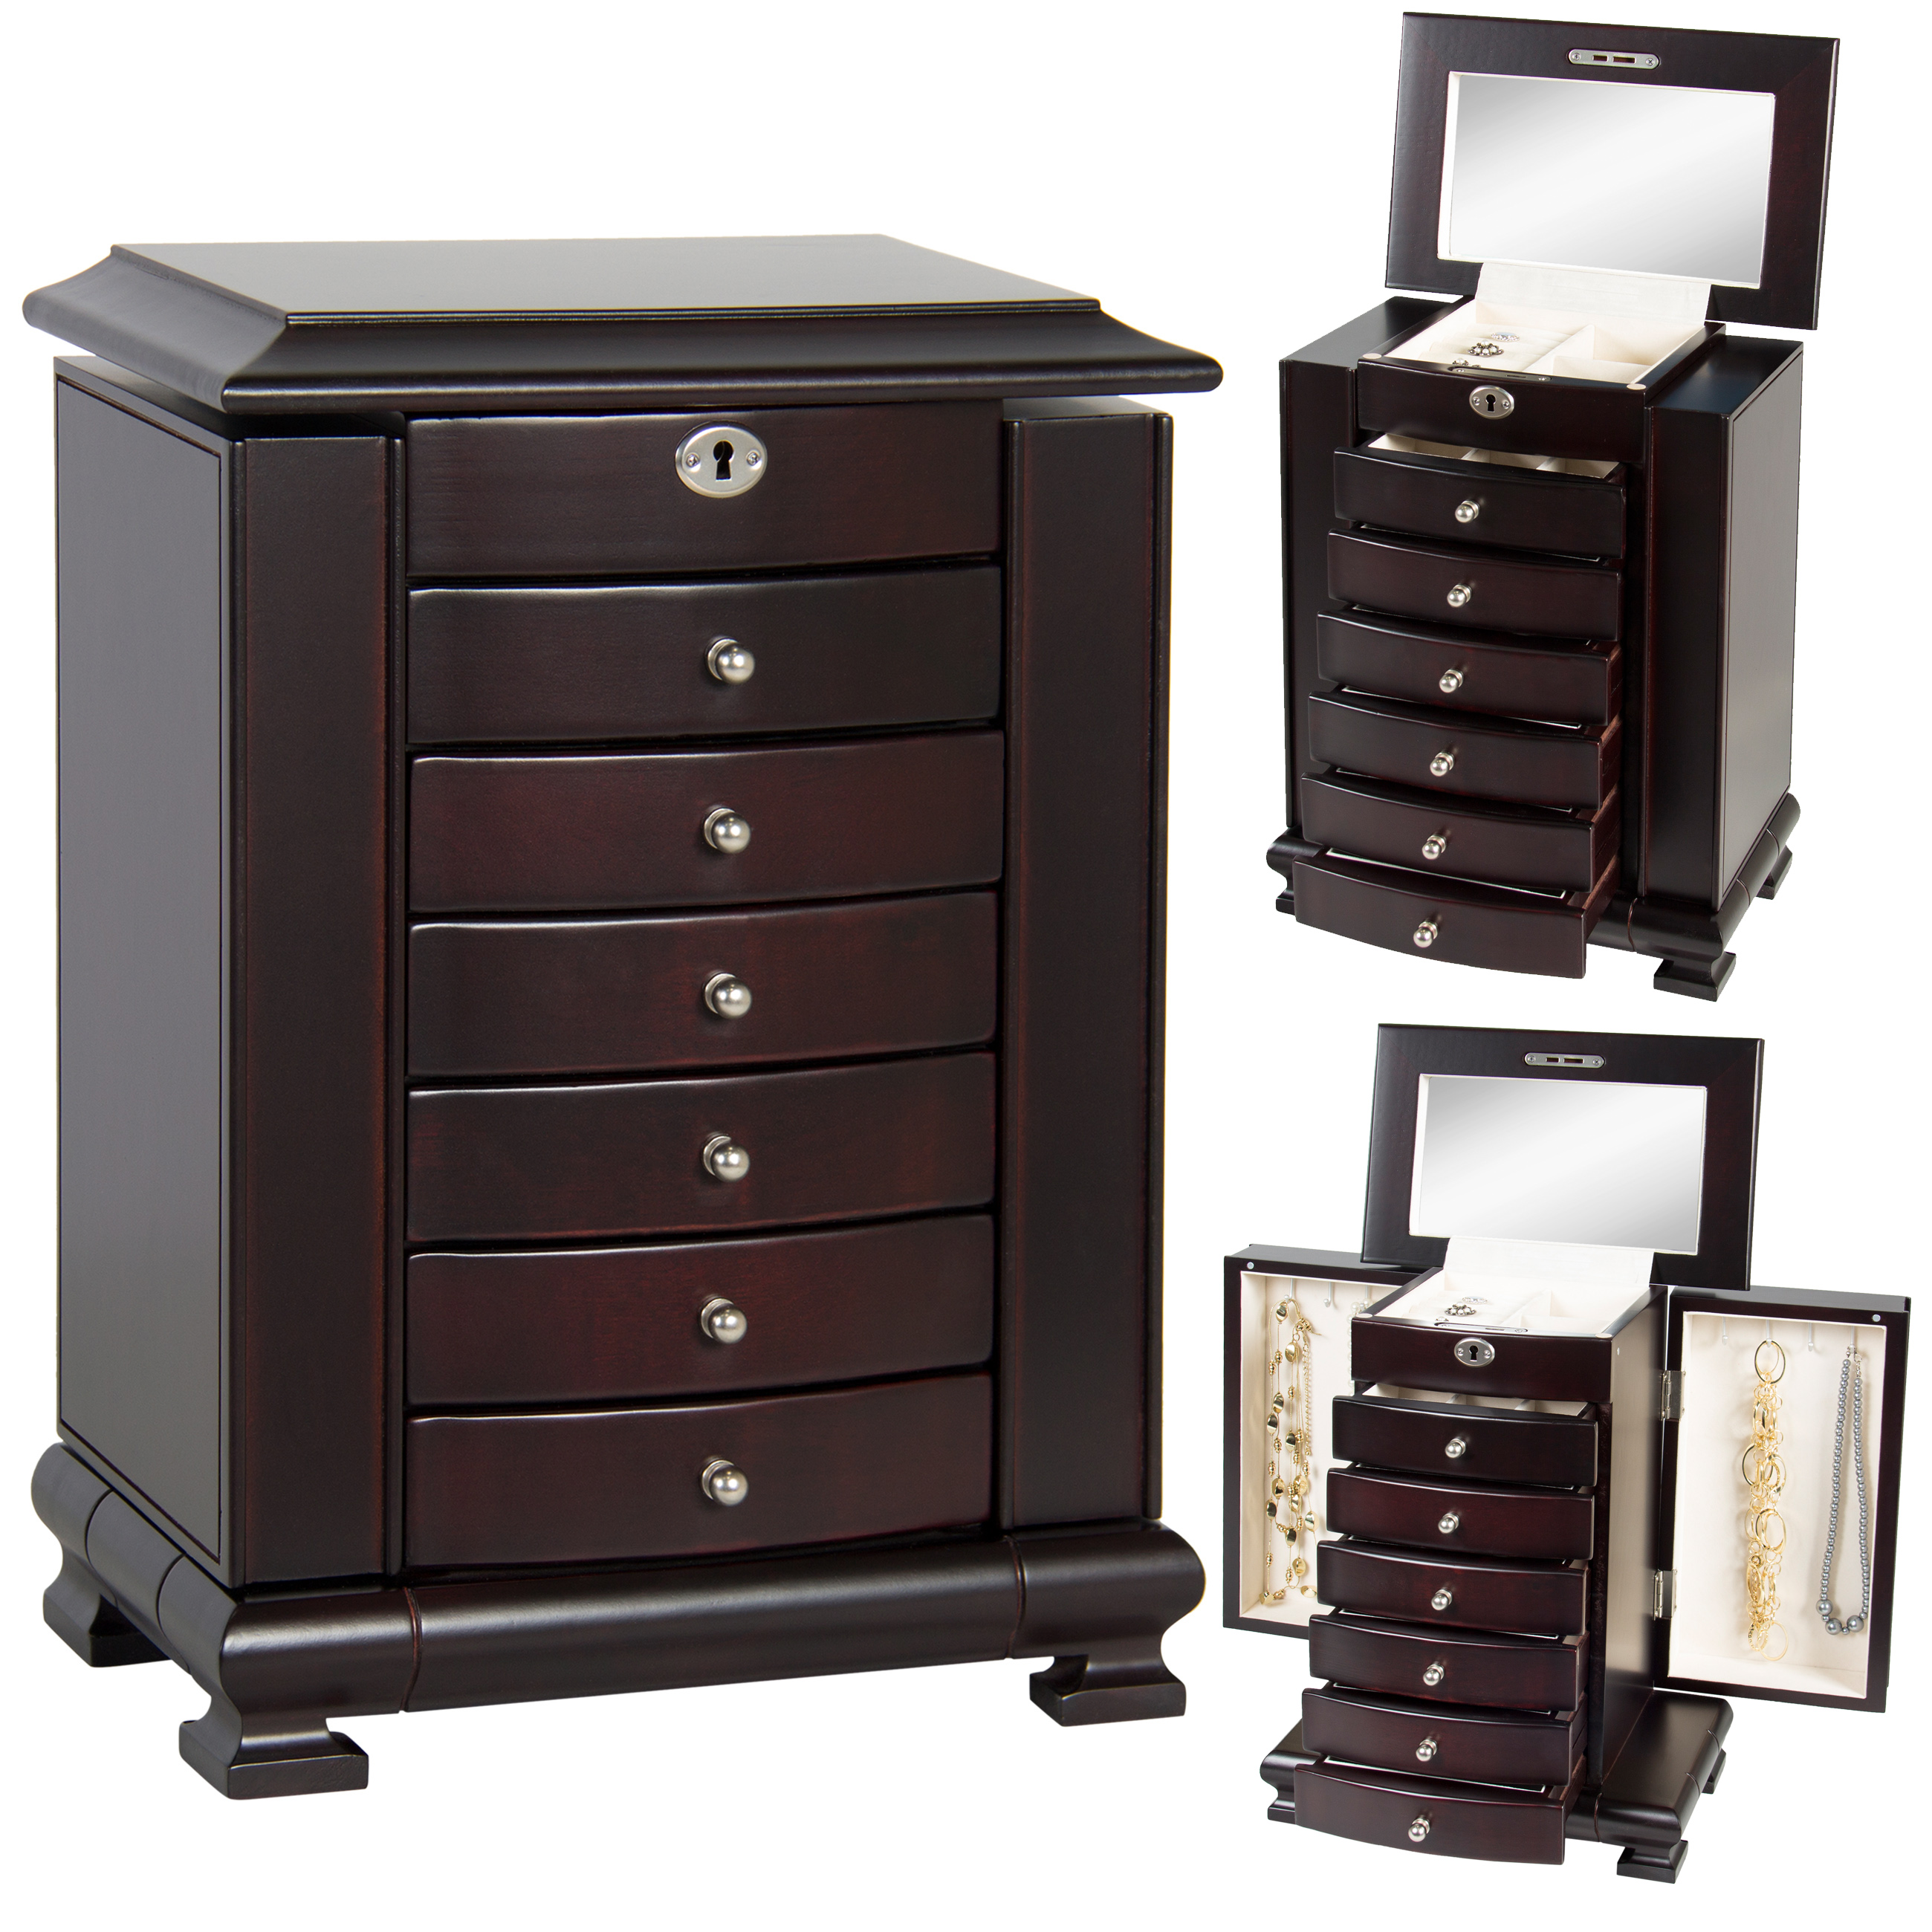 Best Choice Products Handcrafted Wooden Jewelry Box Organizer Wood Armoire Cabinet Storage Chest